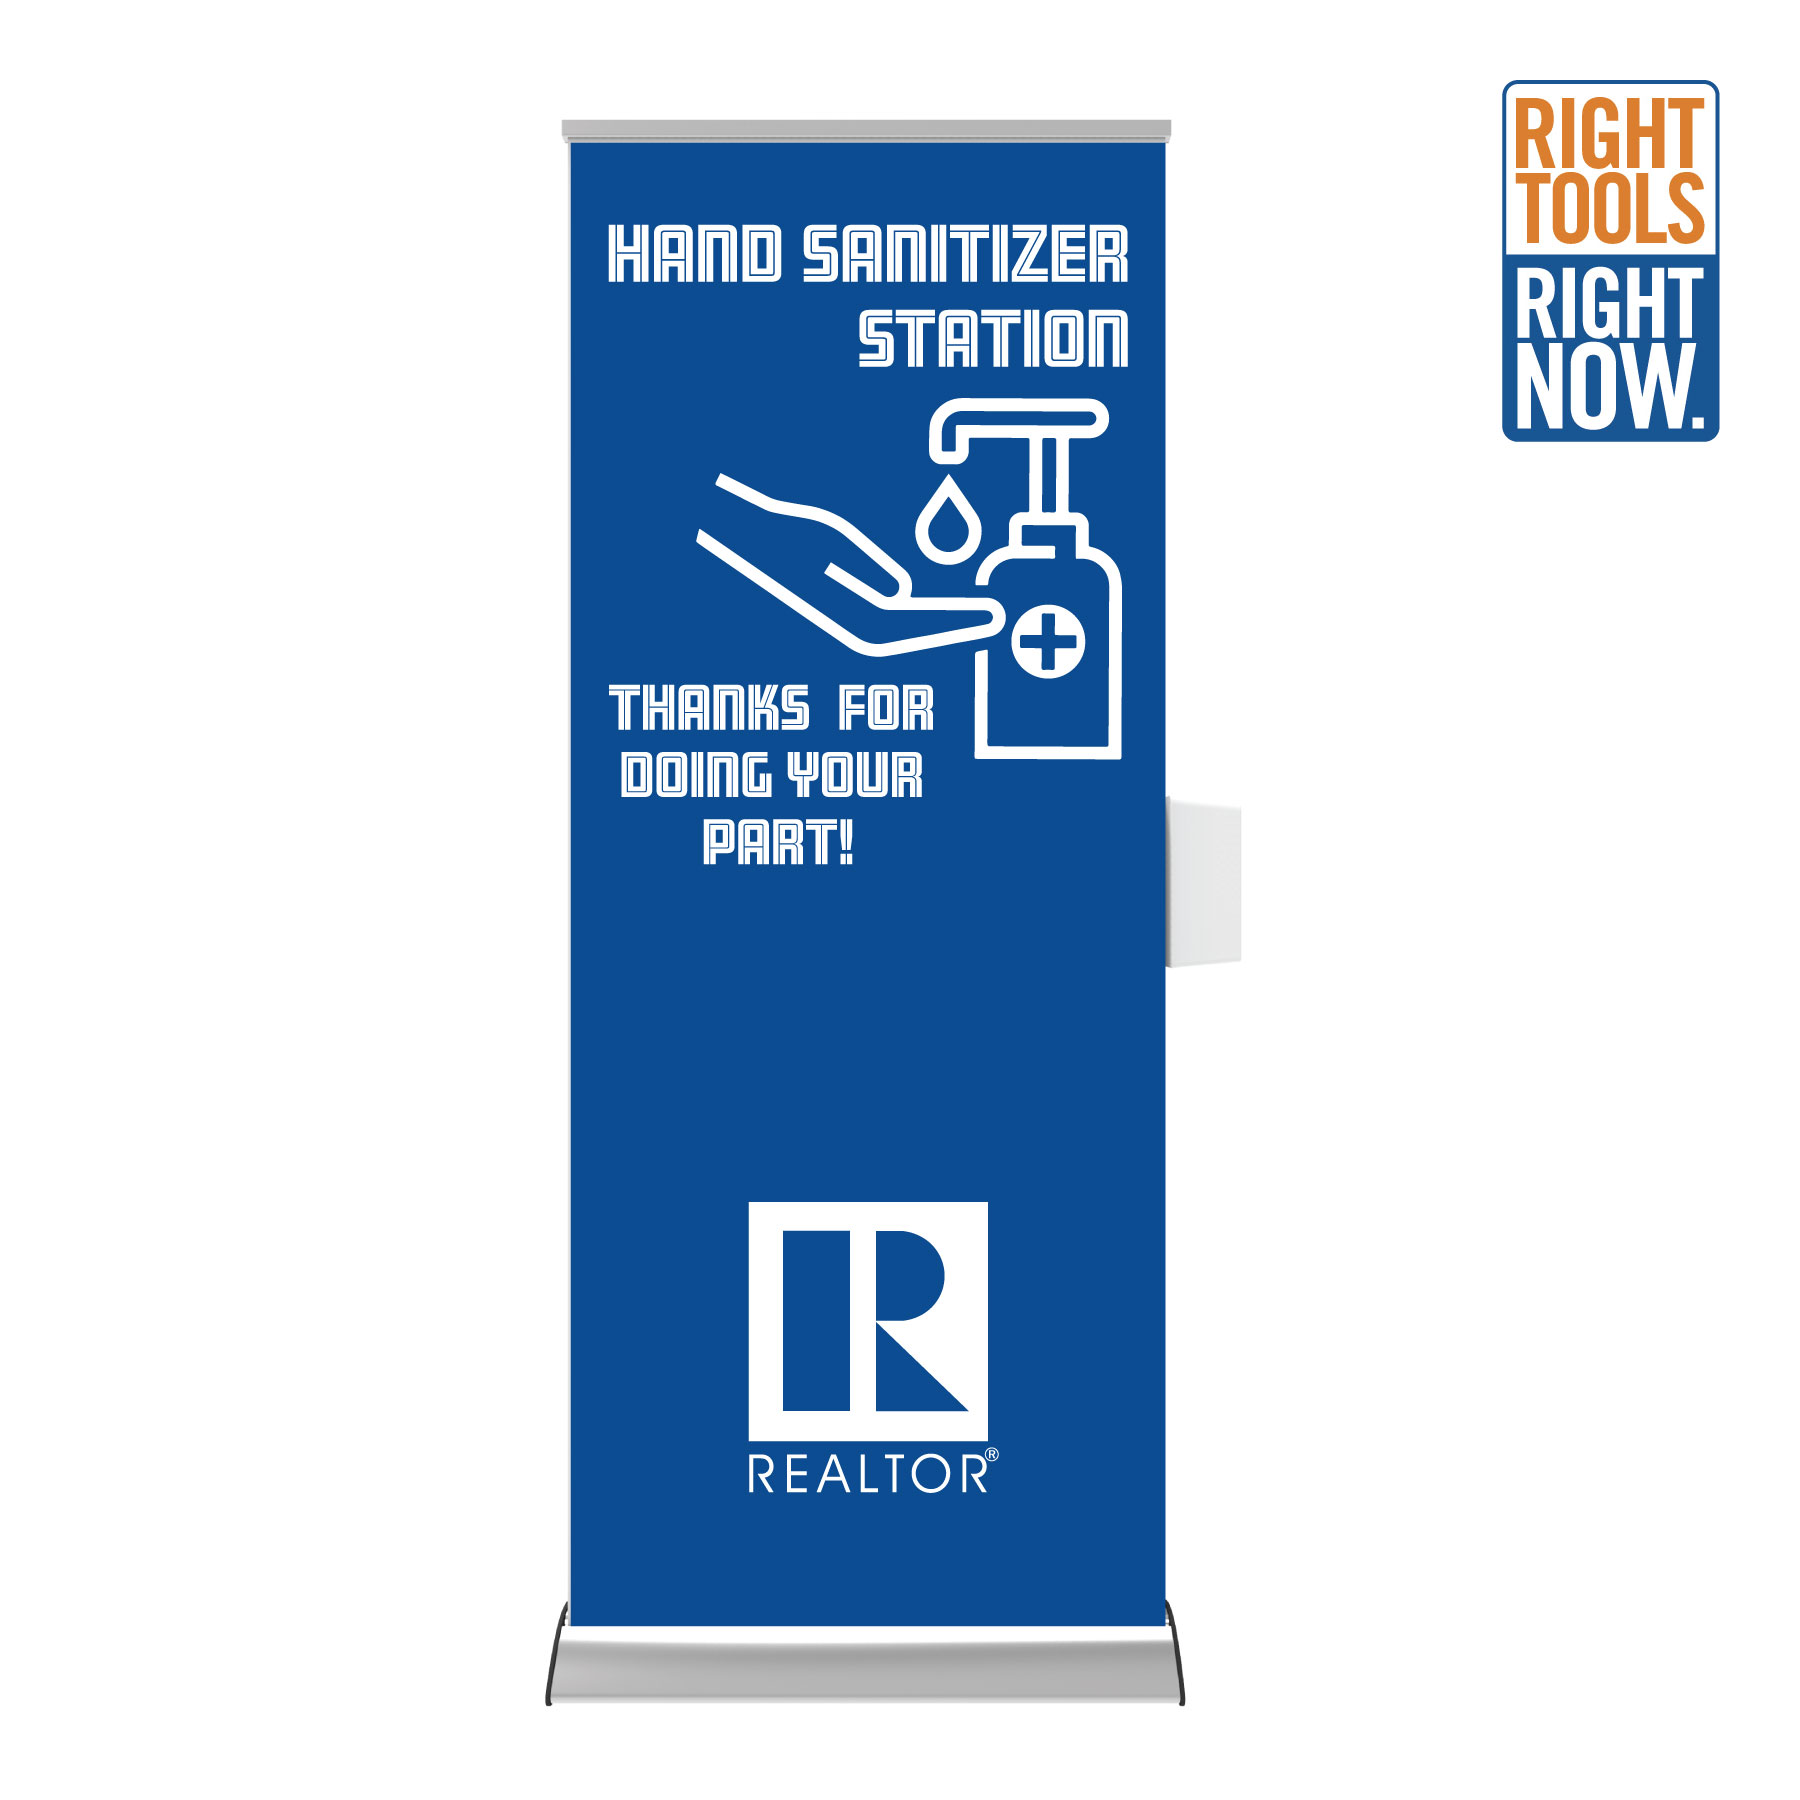 Made to Order: Banitizer - Retractable Banner with Sanitizer Dispenser - RTS4762